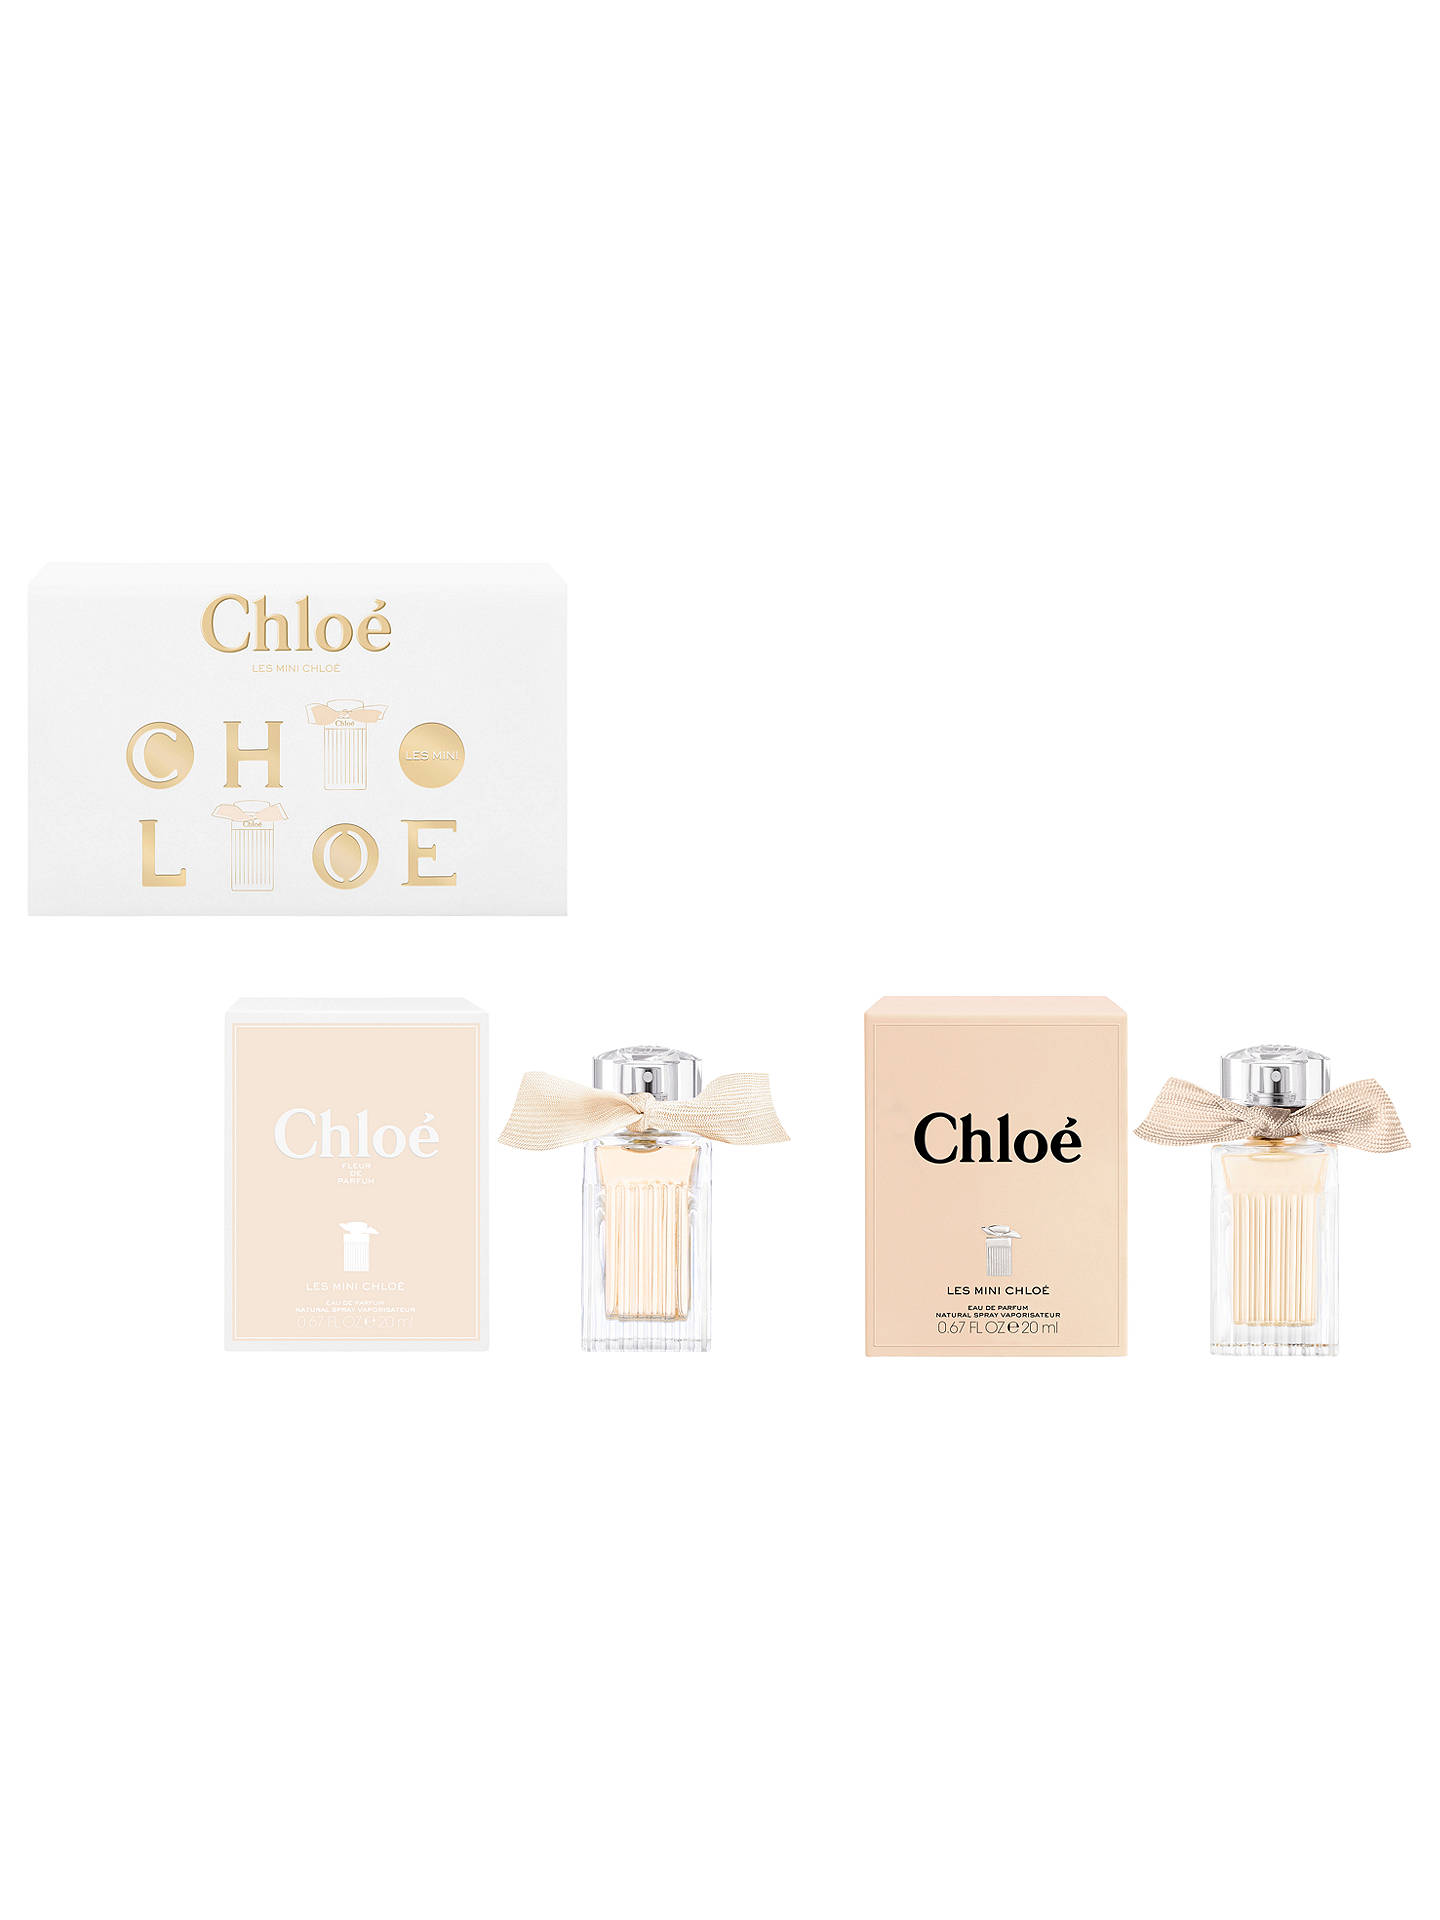 Chloe perfume - a great gift for a woman 35